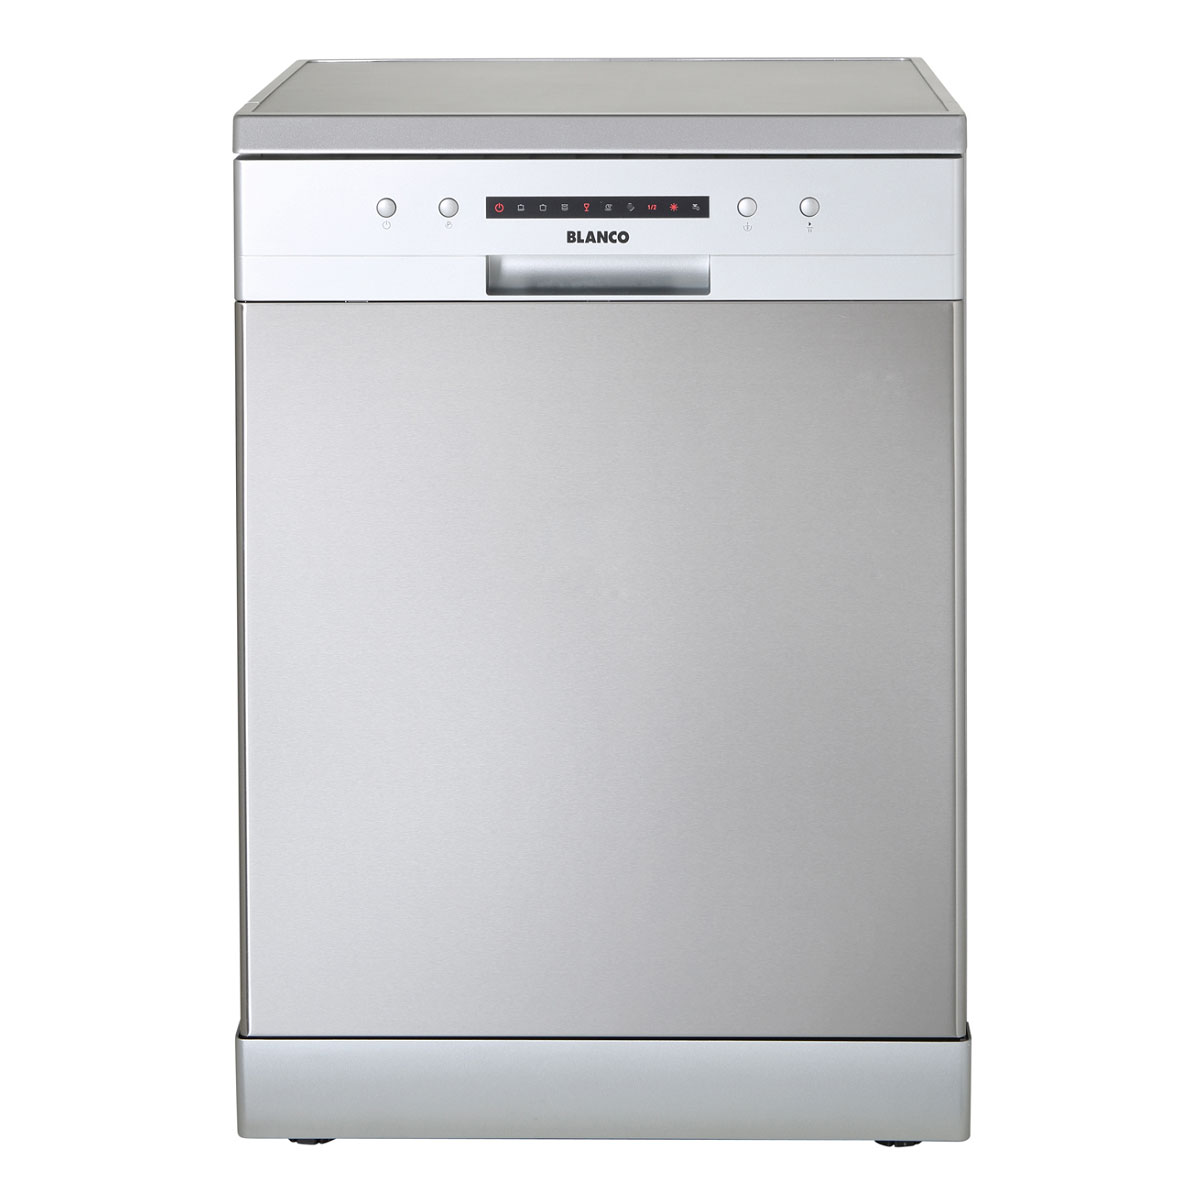 Blanco Freestanding Dishwasher BDW146X